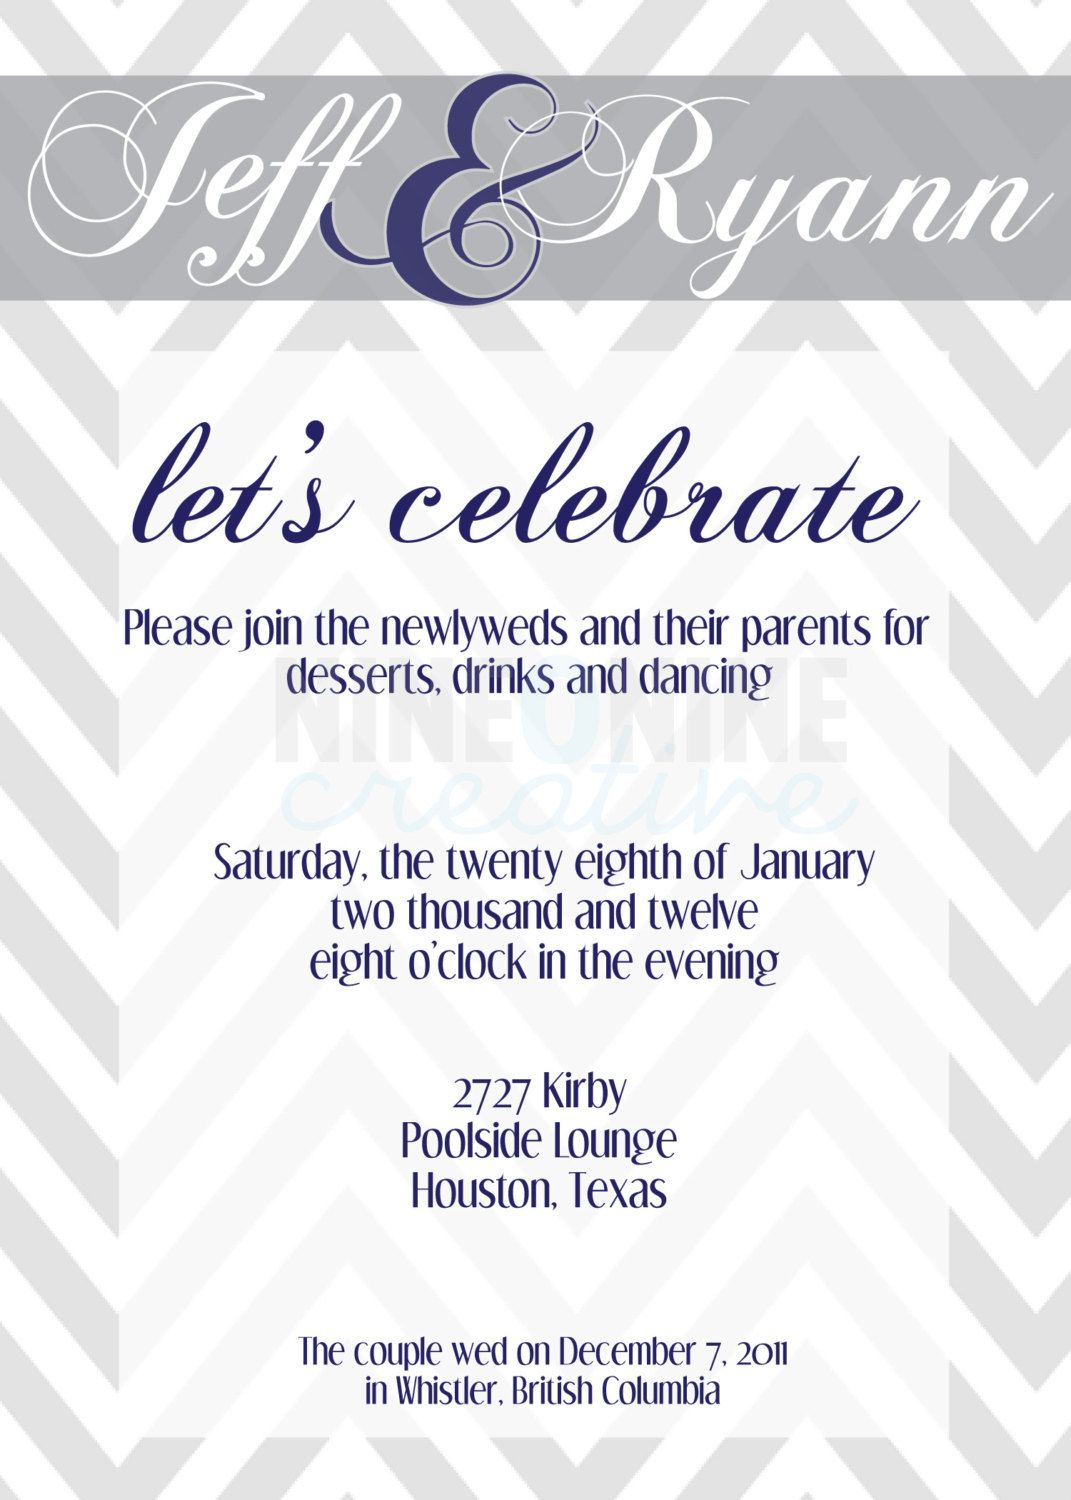 Wedding reception invitation Reception invitations and Wedding